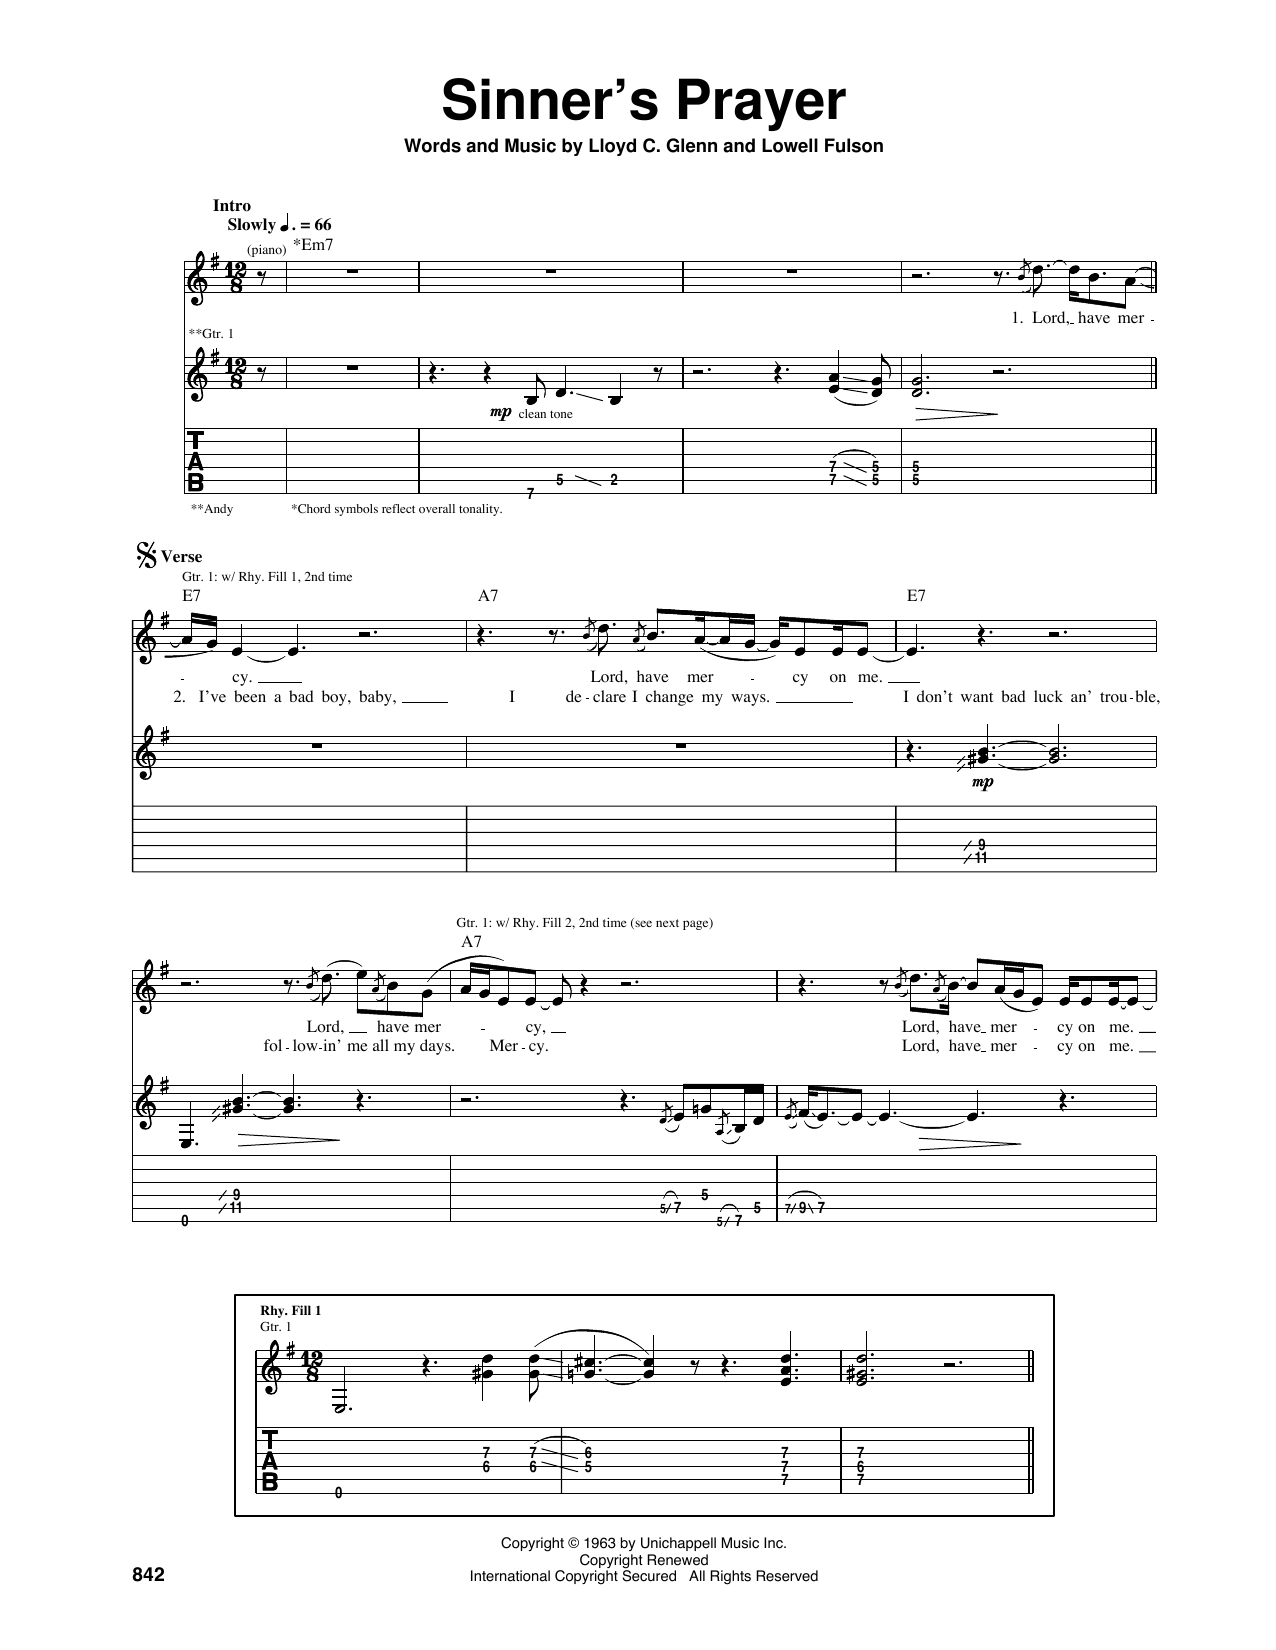 Sinner's Prayer Sheet Music